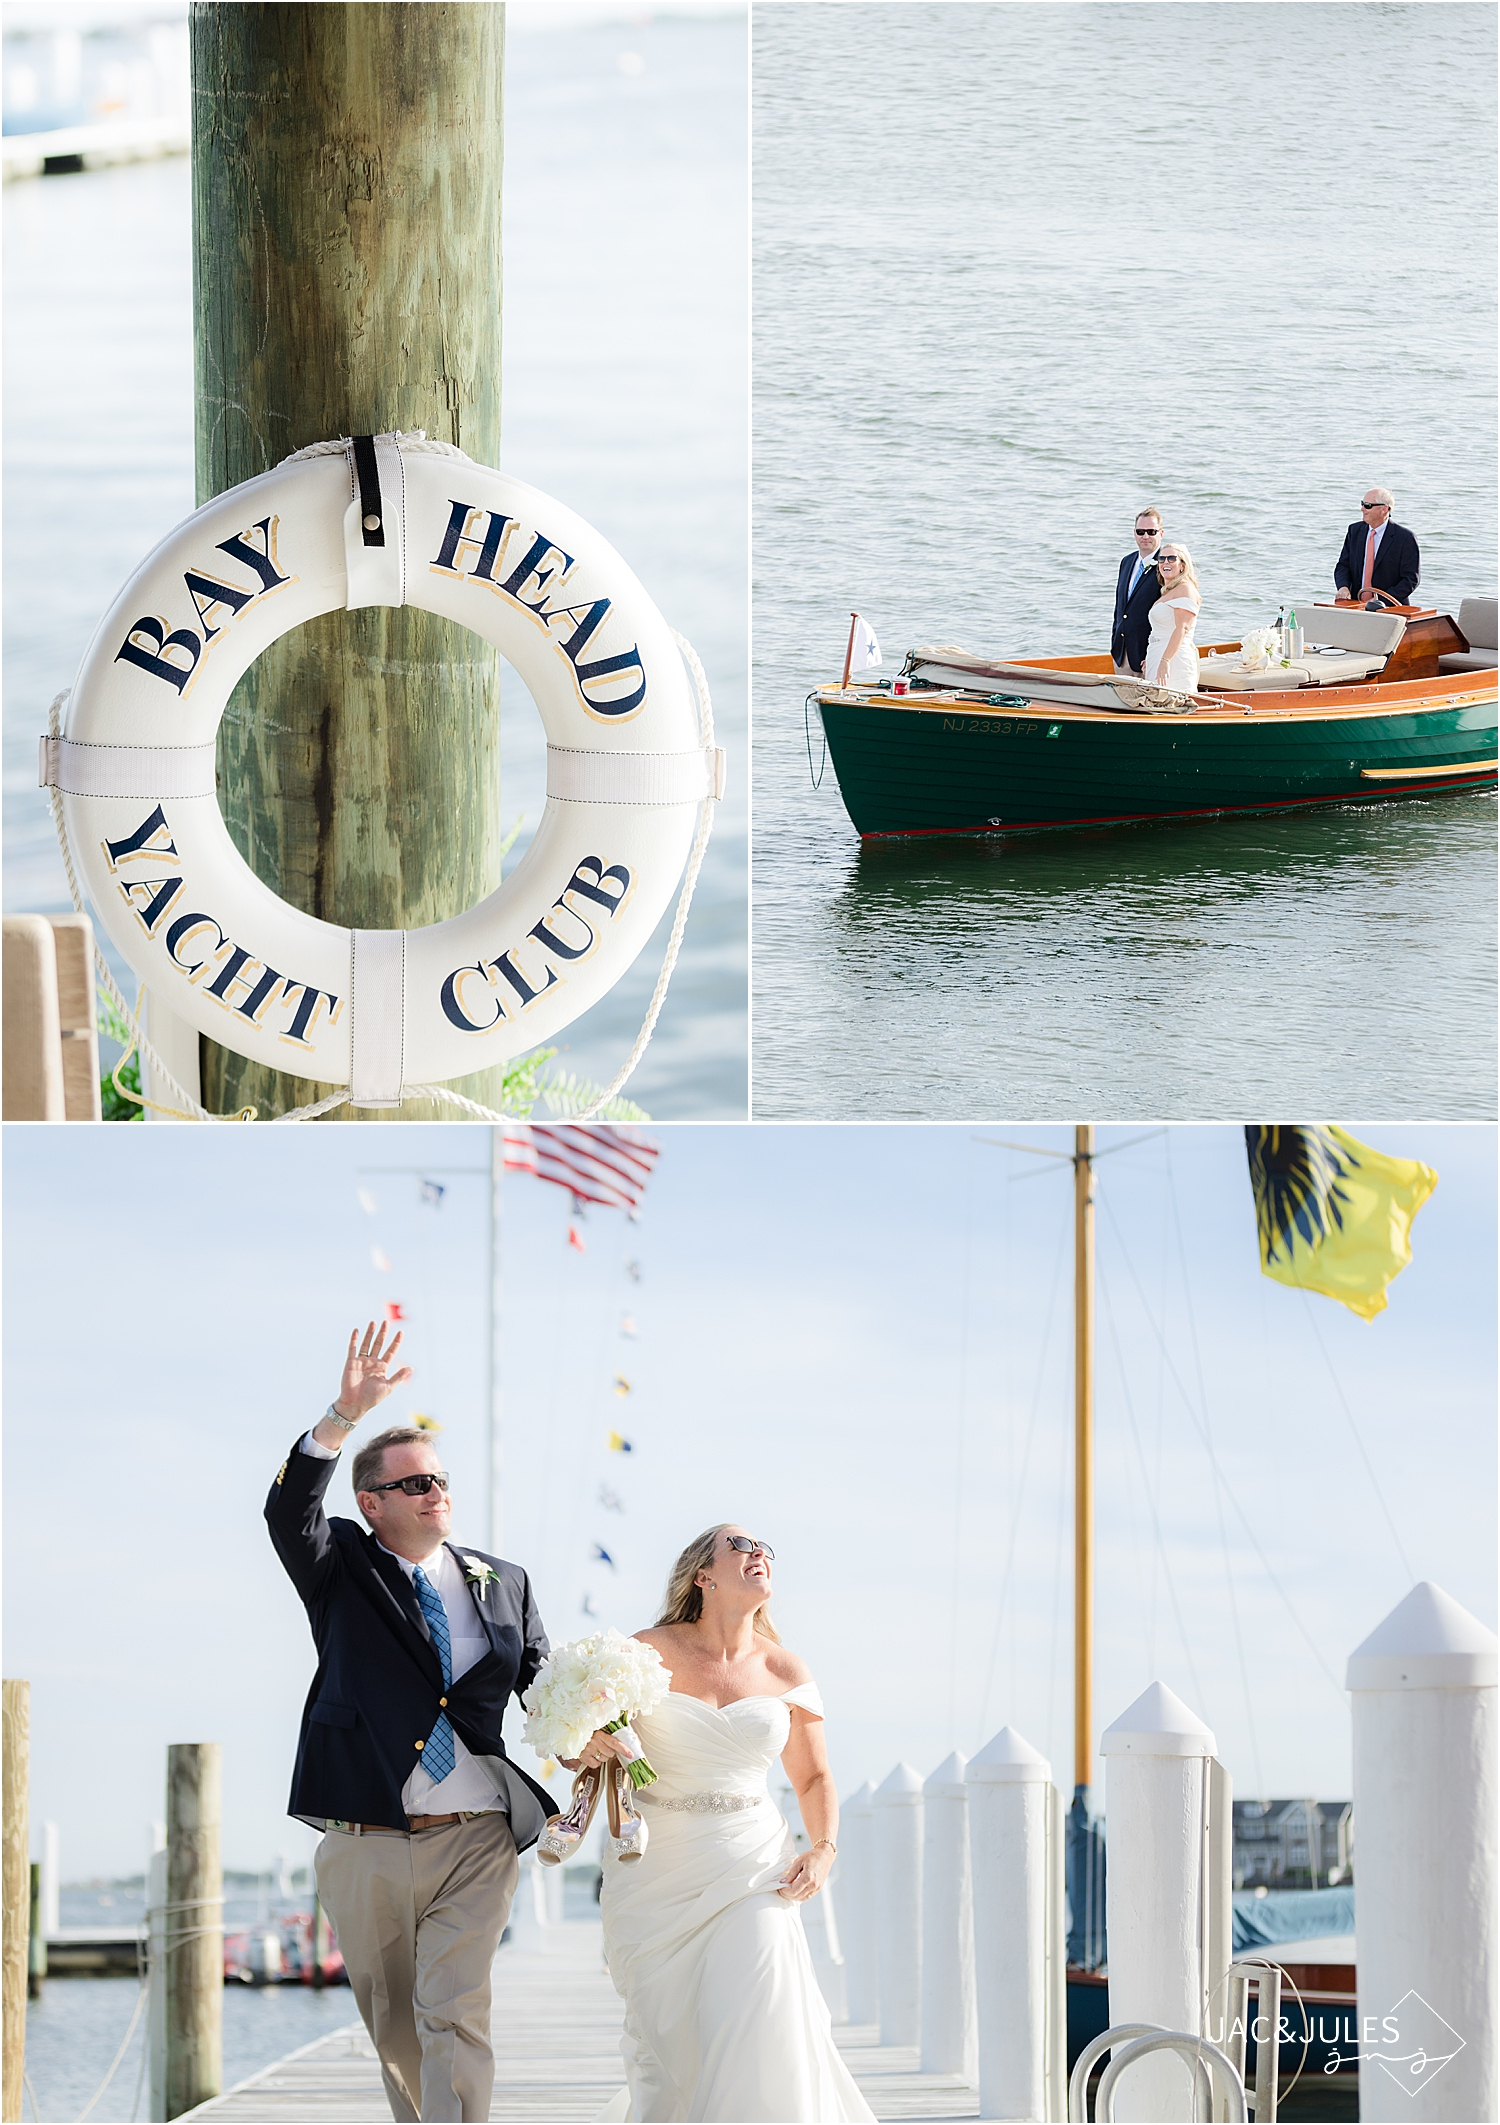 boat ride with bride and groom as they enter their cocktail hour at bay head yacht club